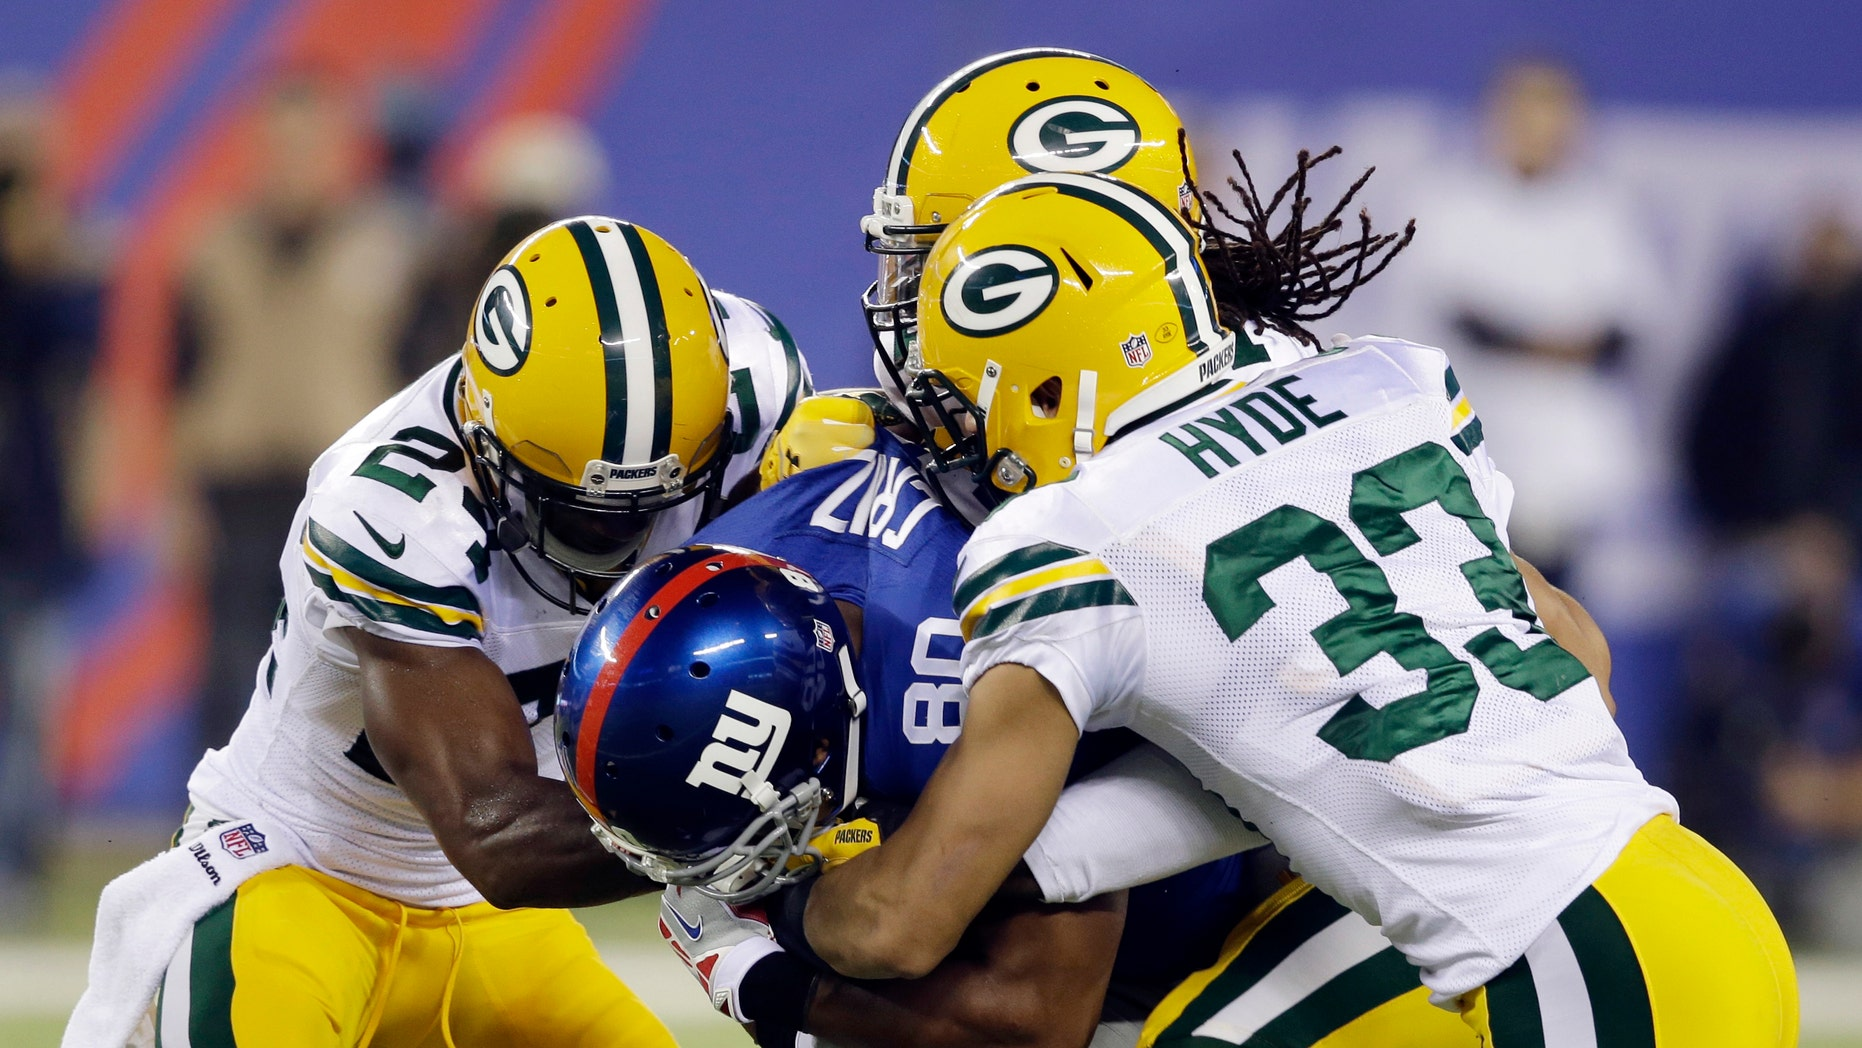 New York Giants wide receiver Victor Cruz (80) is tackled by Micah Hyde (33), Davon House, and Jarrett Bush, left, during the first half of an NFL football game Sunday, Nov. 17, 2013, in East Rutherford, N.J.  (AP Photo/Seth Wenig)